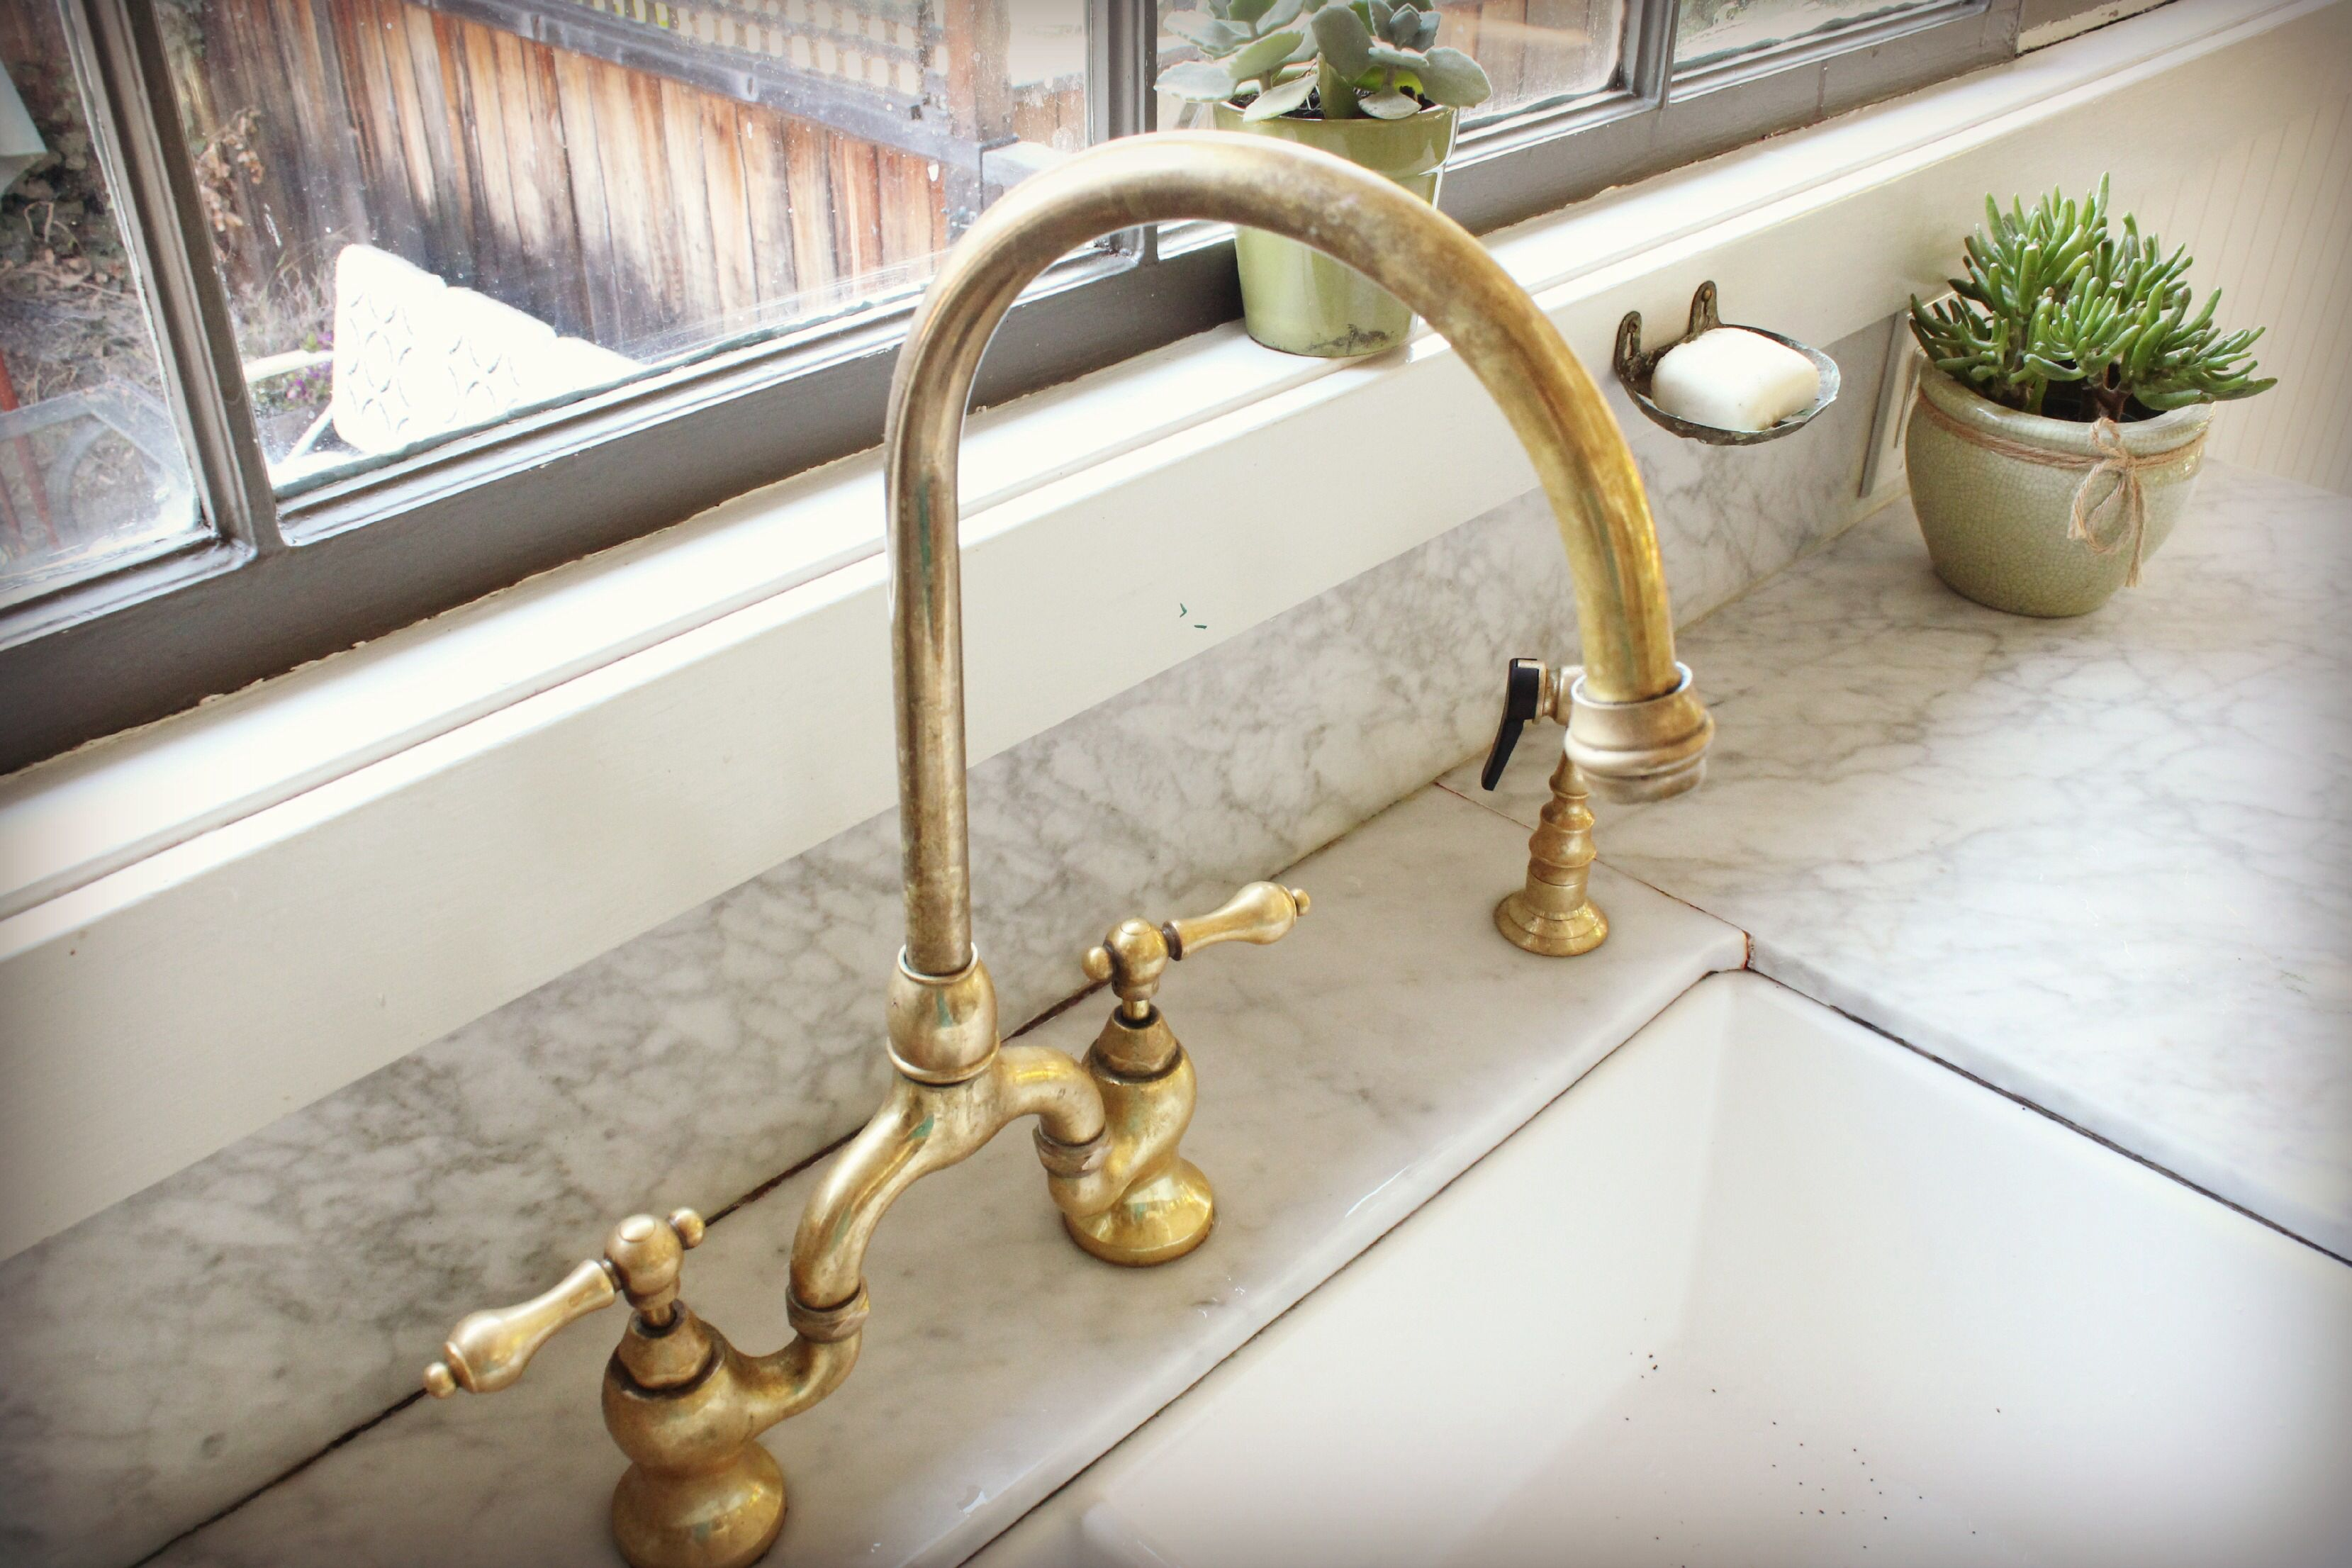 The Perrin & Rowe Ionian Kitchen Tap in Gold with Crosshead ...